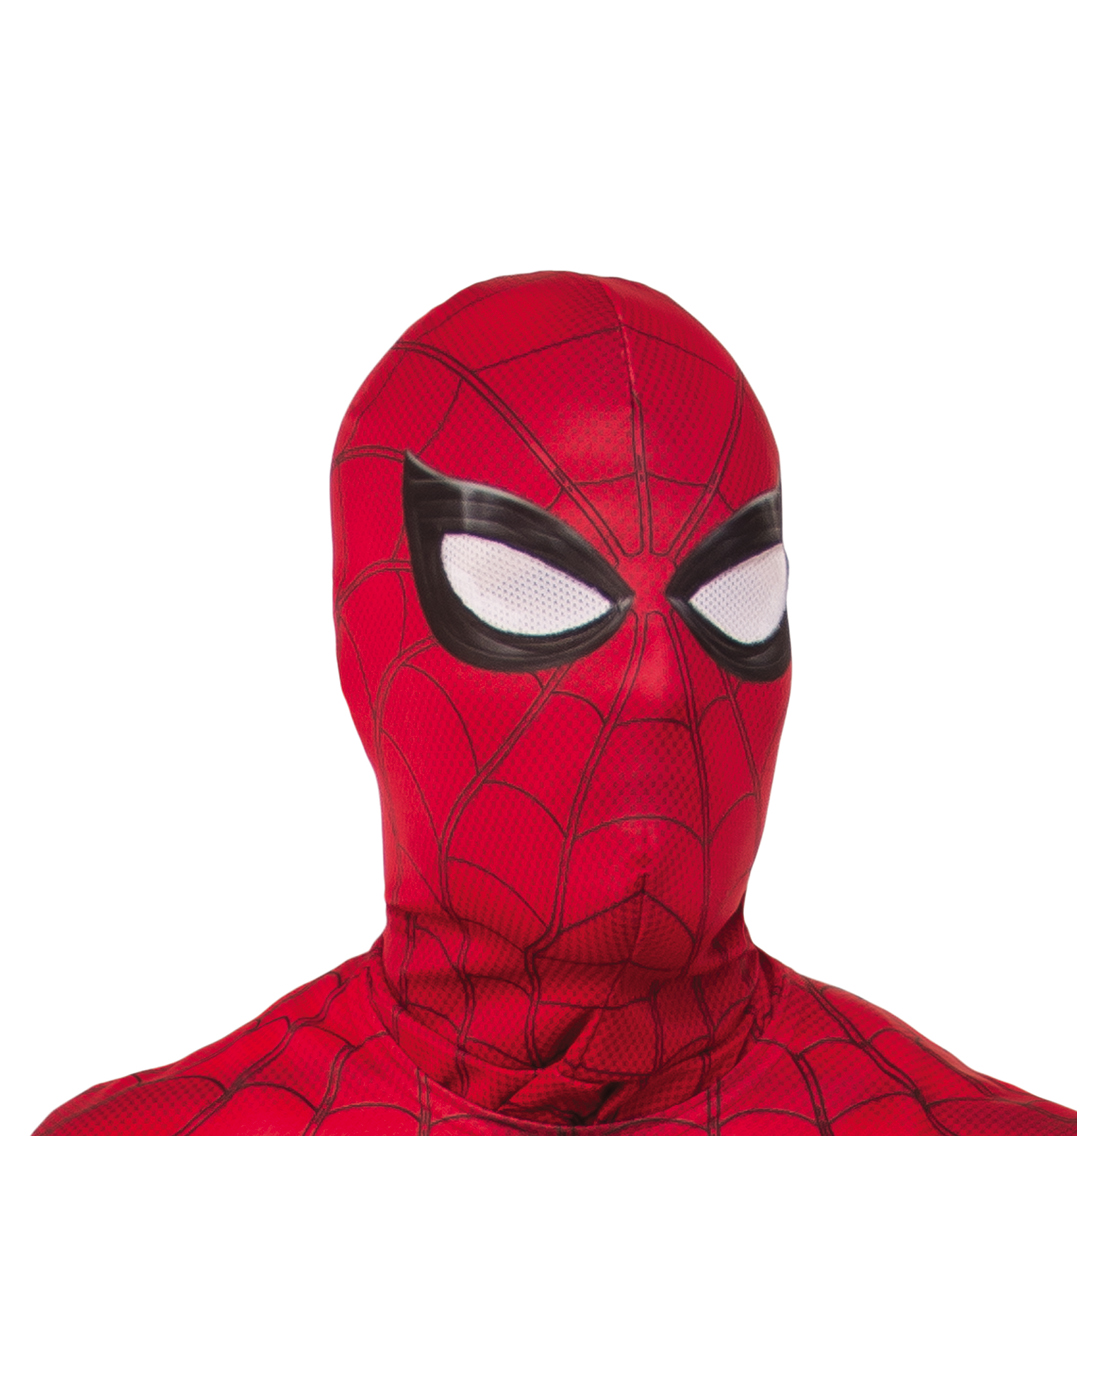 Spiderman Far From Home Spiderman Mens Adult Fabric Superhero Costume Mask